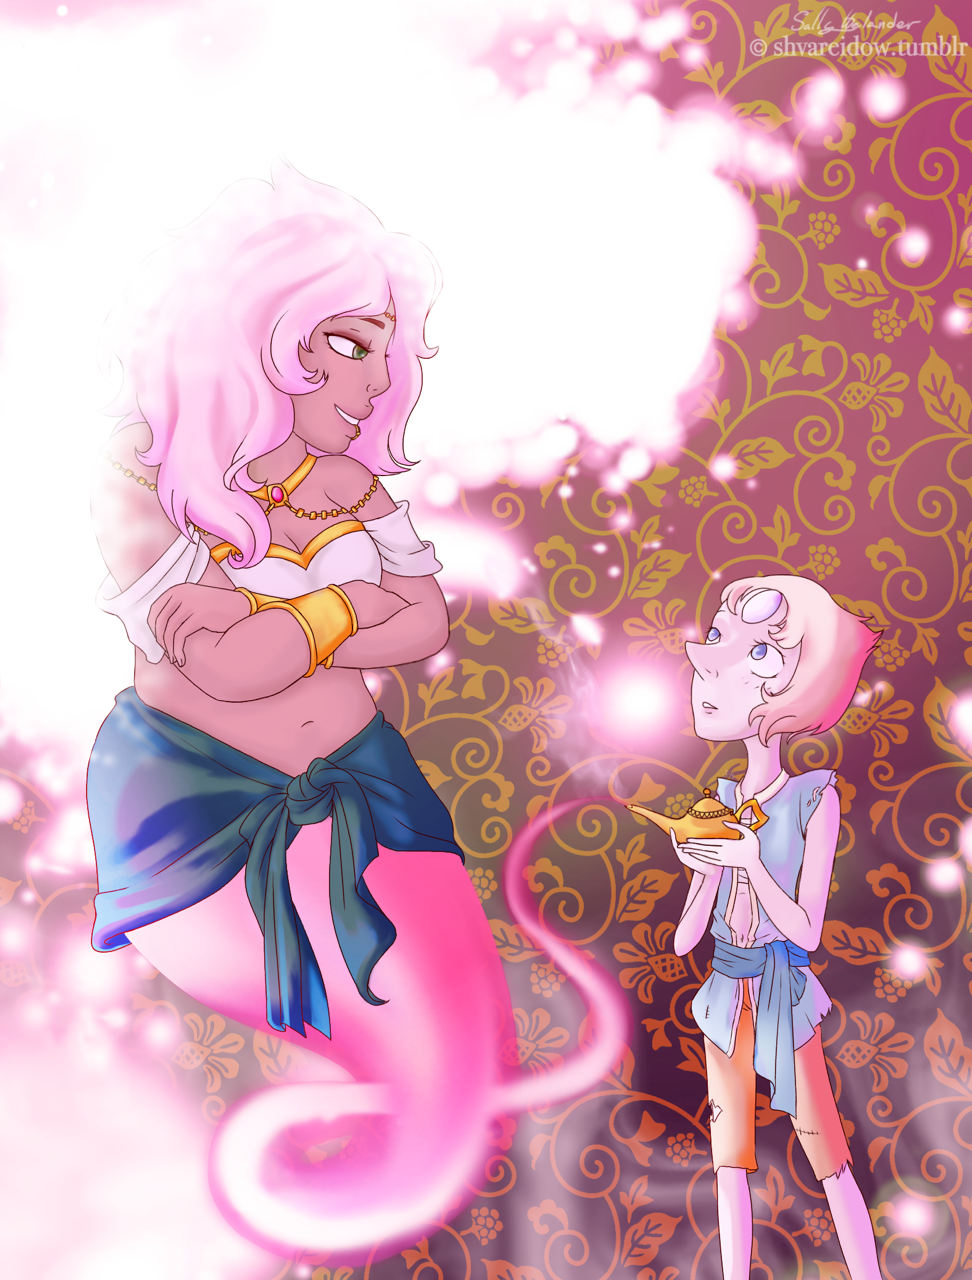 Pearl and Mystery Girl Genie AU for @aut2imagineart Thank you for your request, and I'm sorry for the long wait.